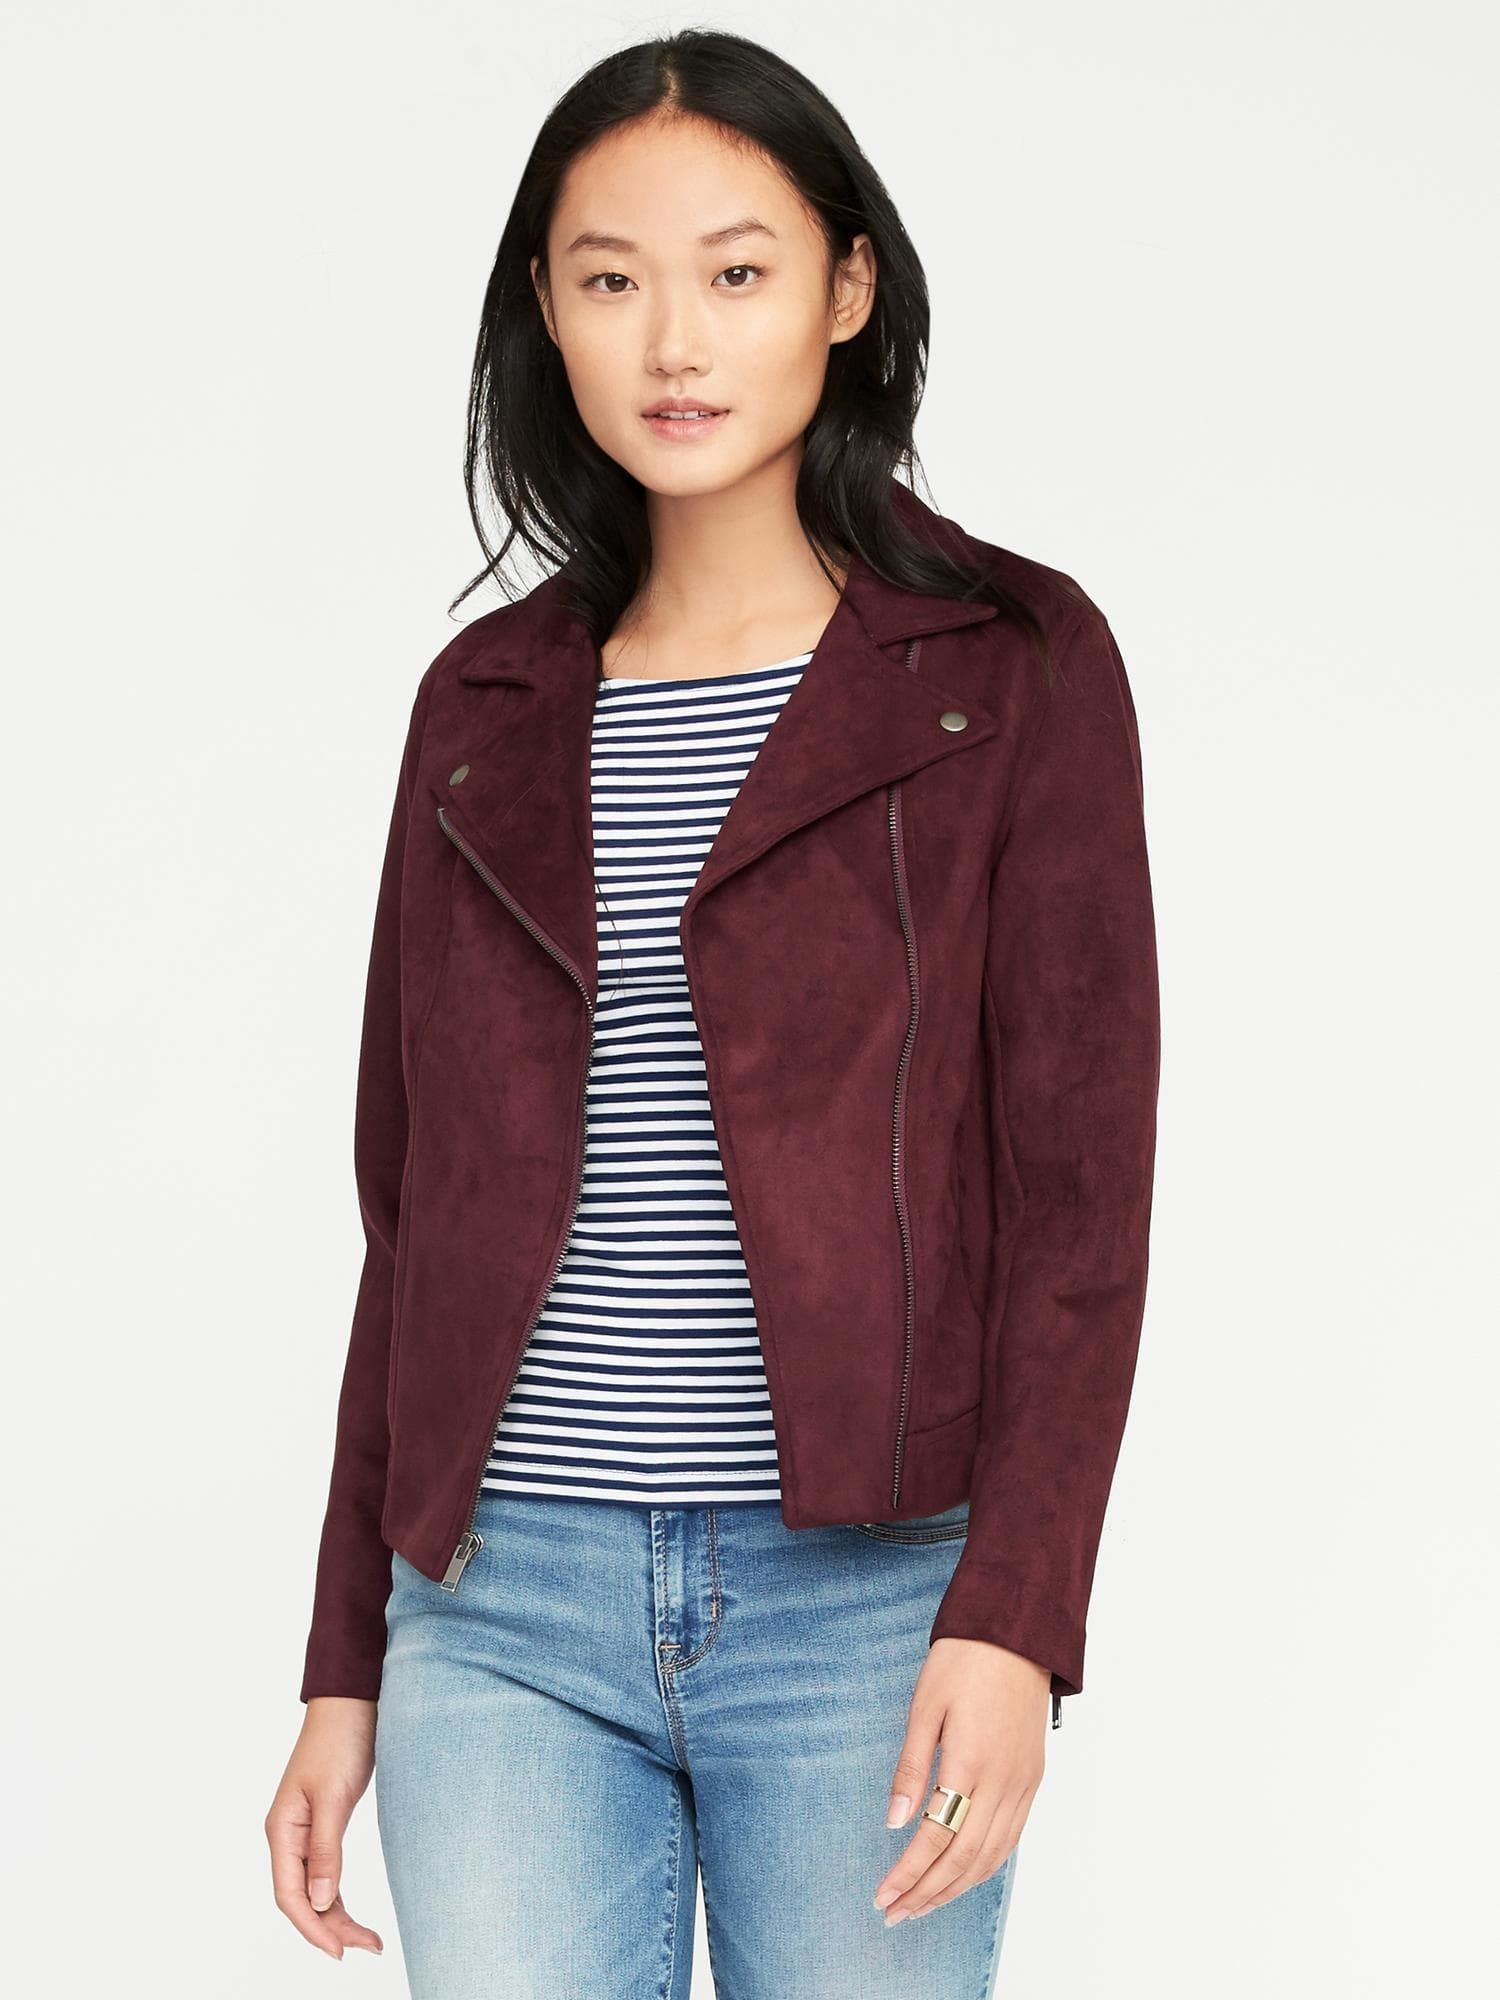 1338cbe76c Love this wine moto jacket from Old Navy!